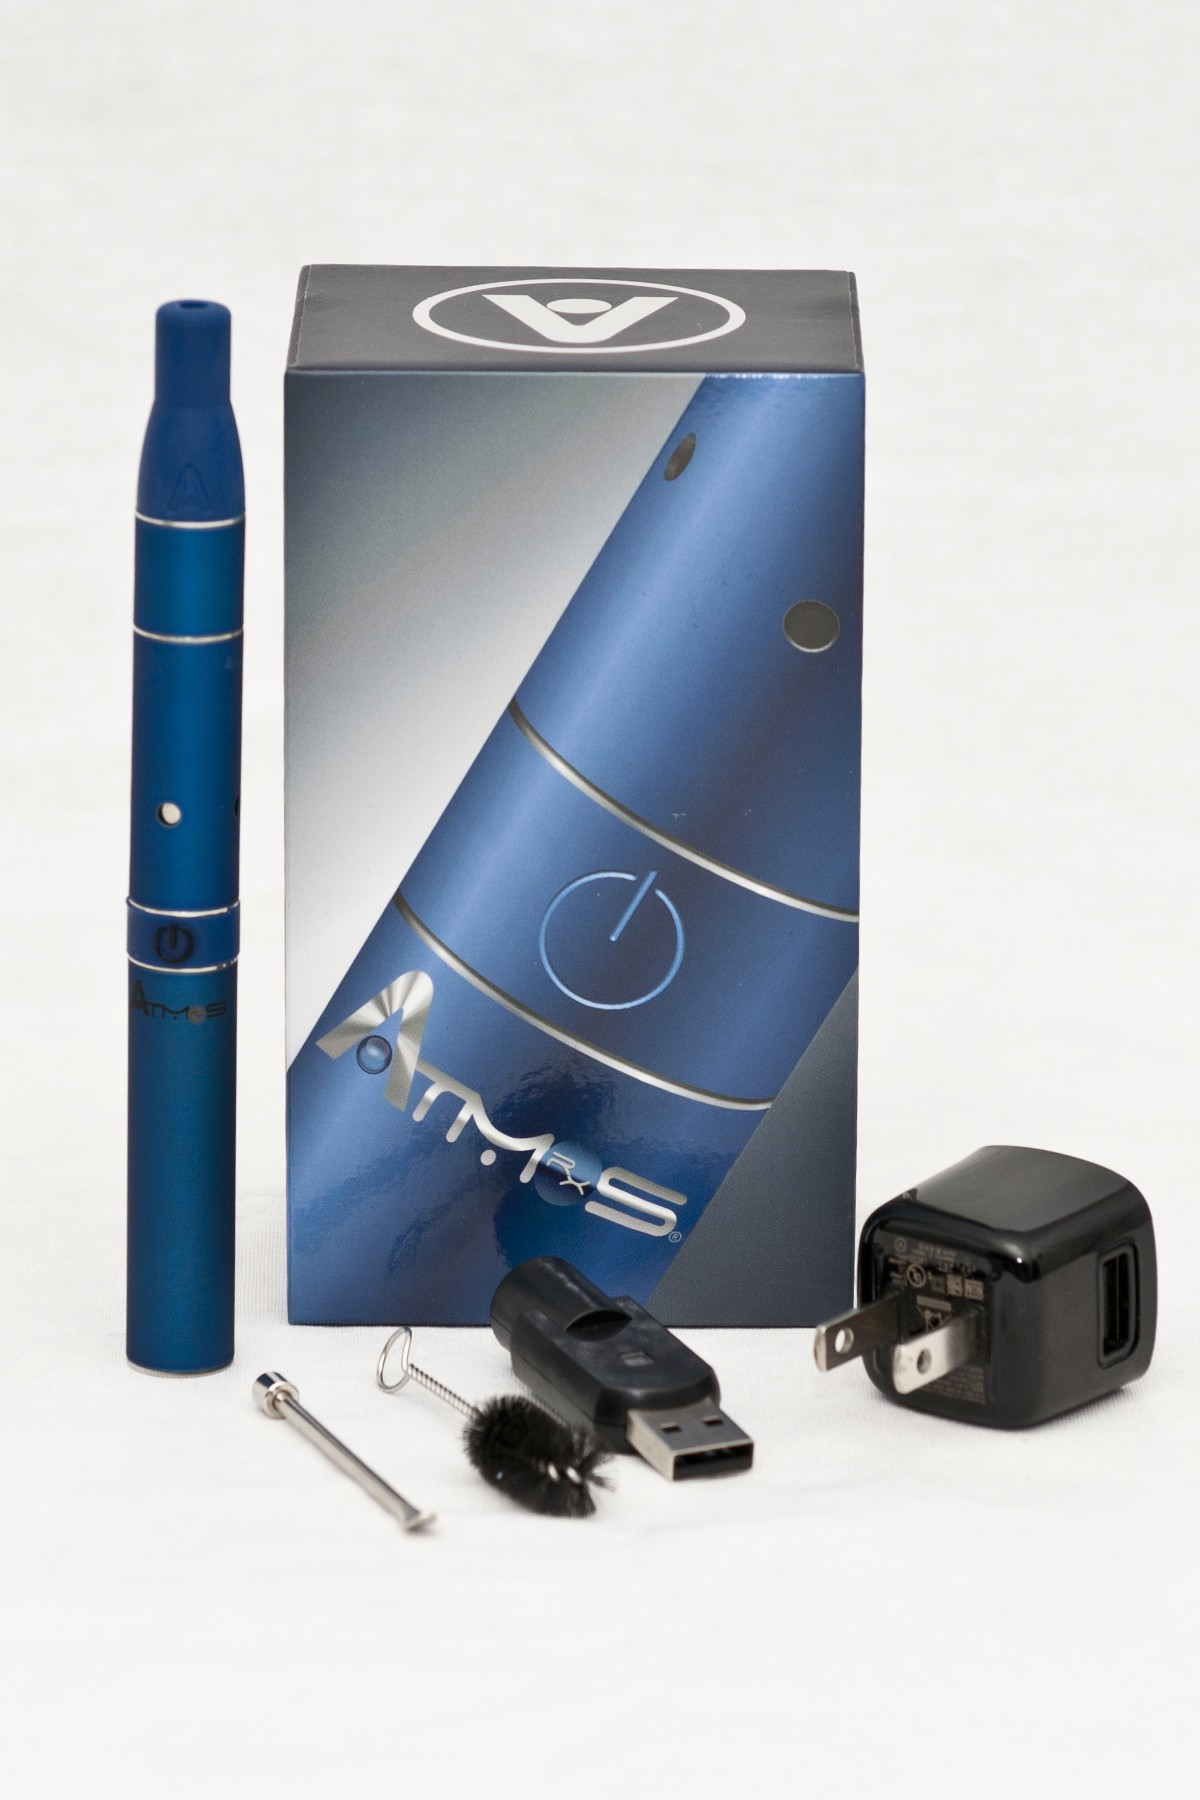 Atmos Raw Portable Vaporizer